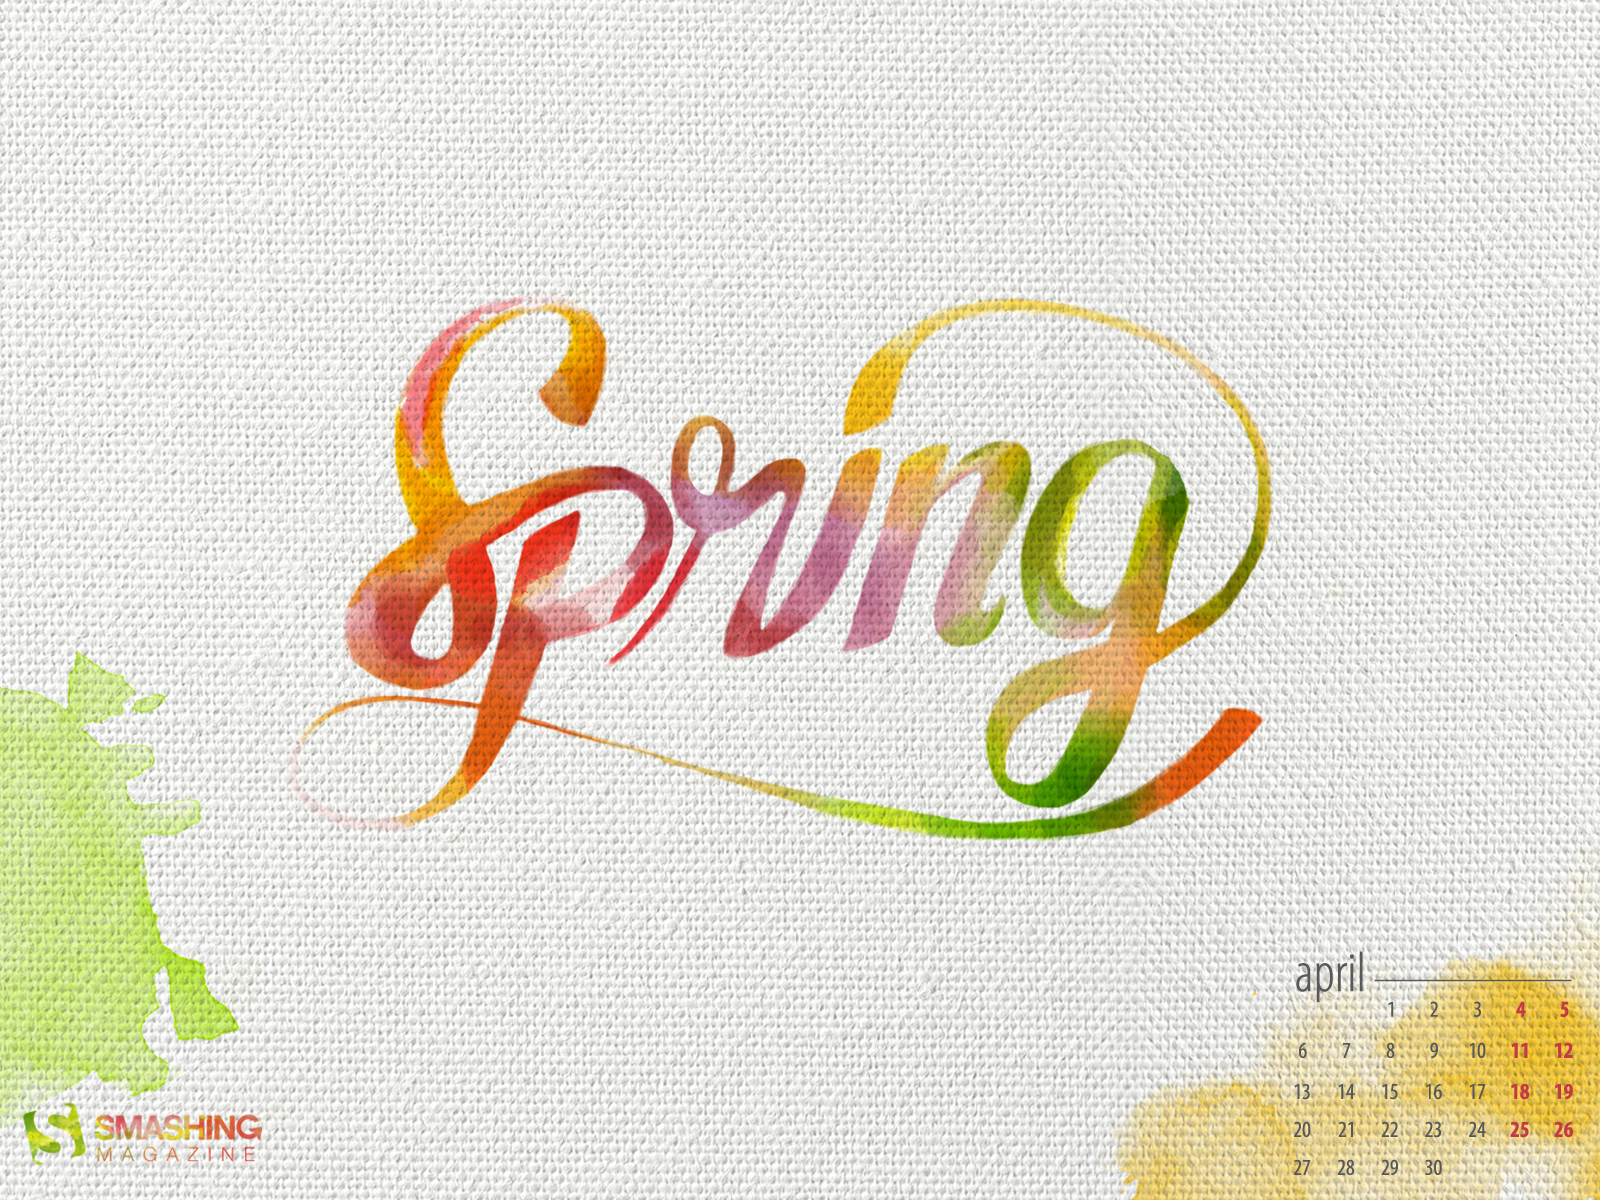 Desktop Wallpaper Calendars April 2017